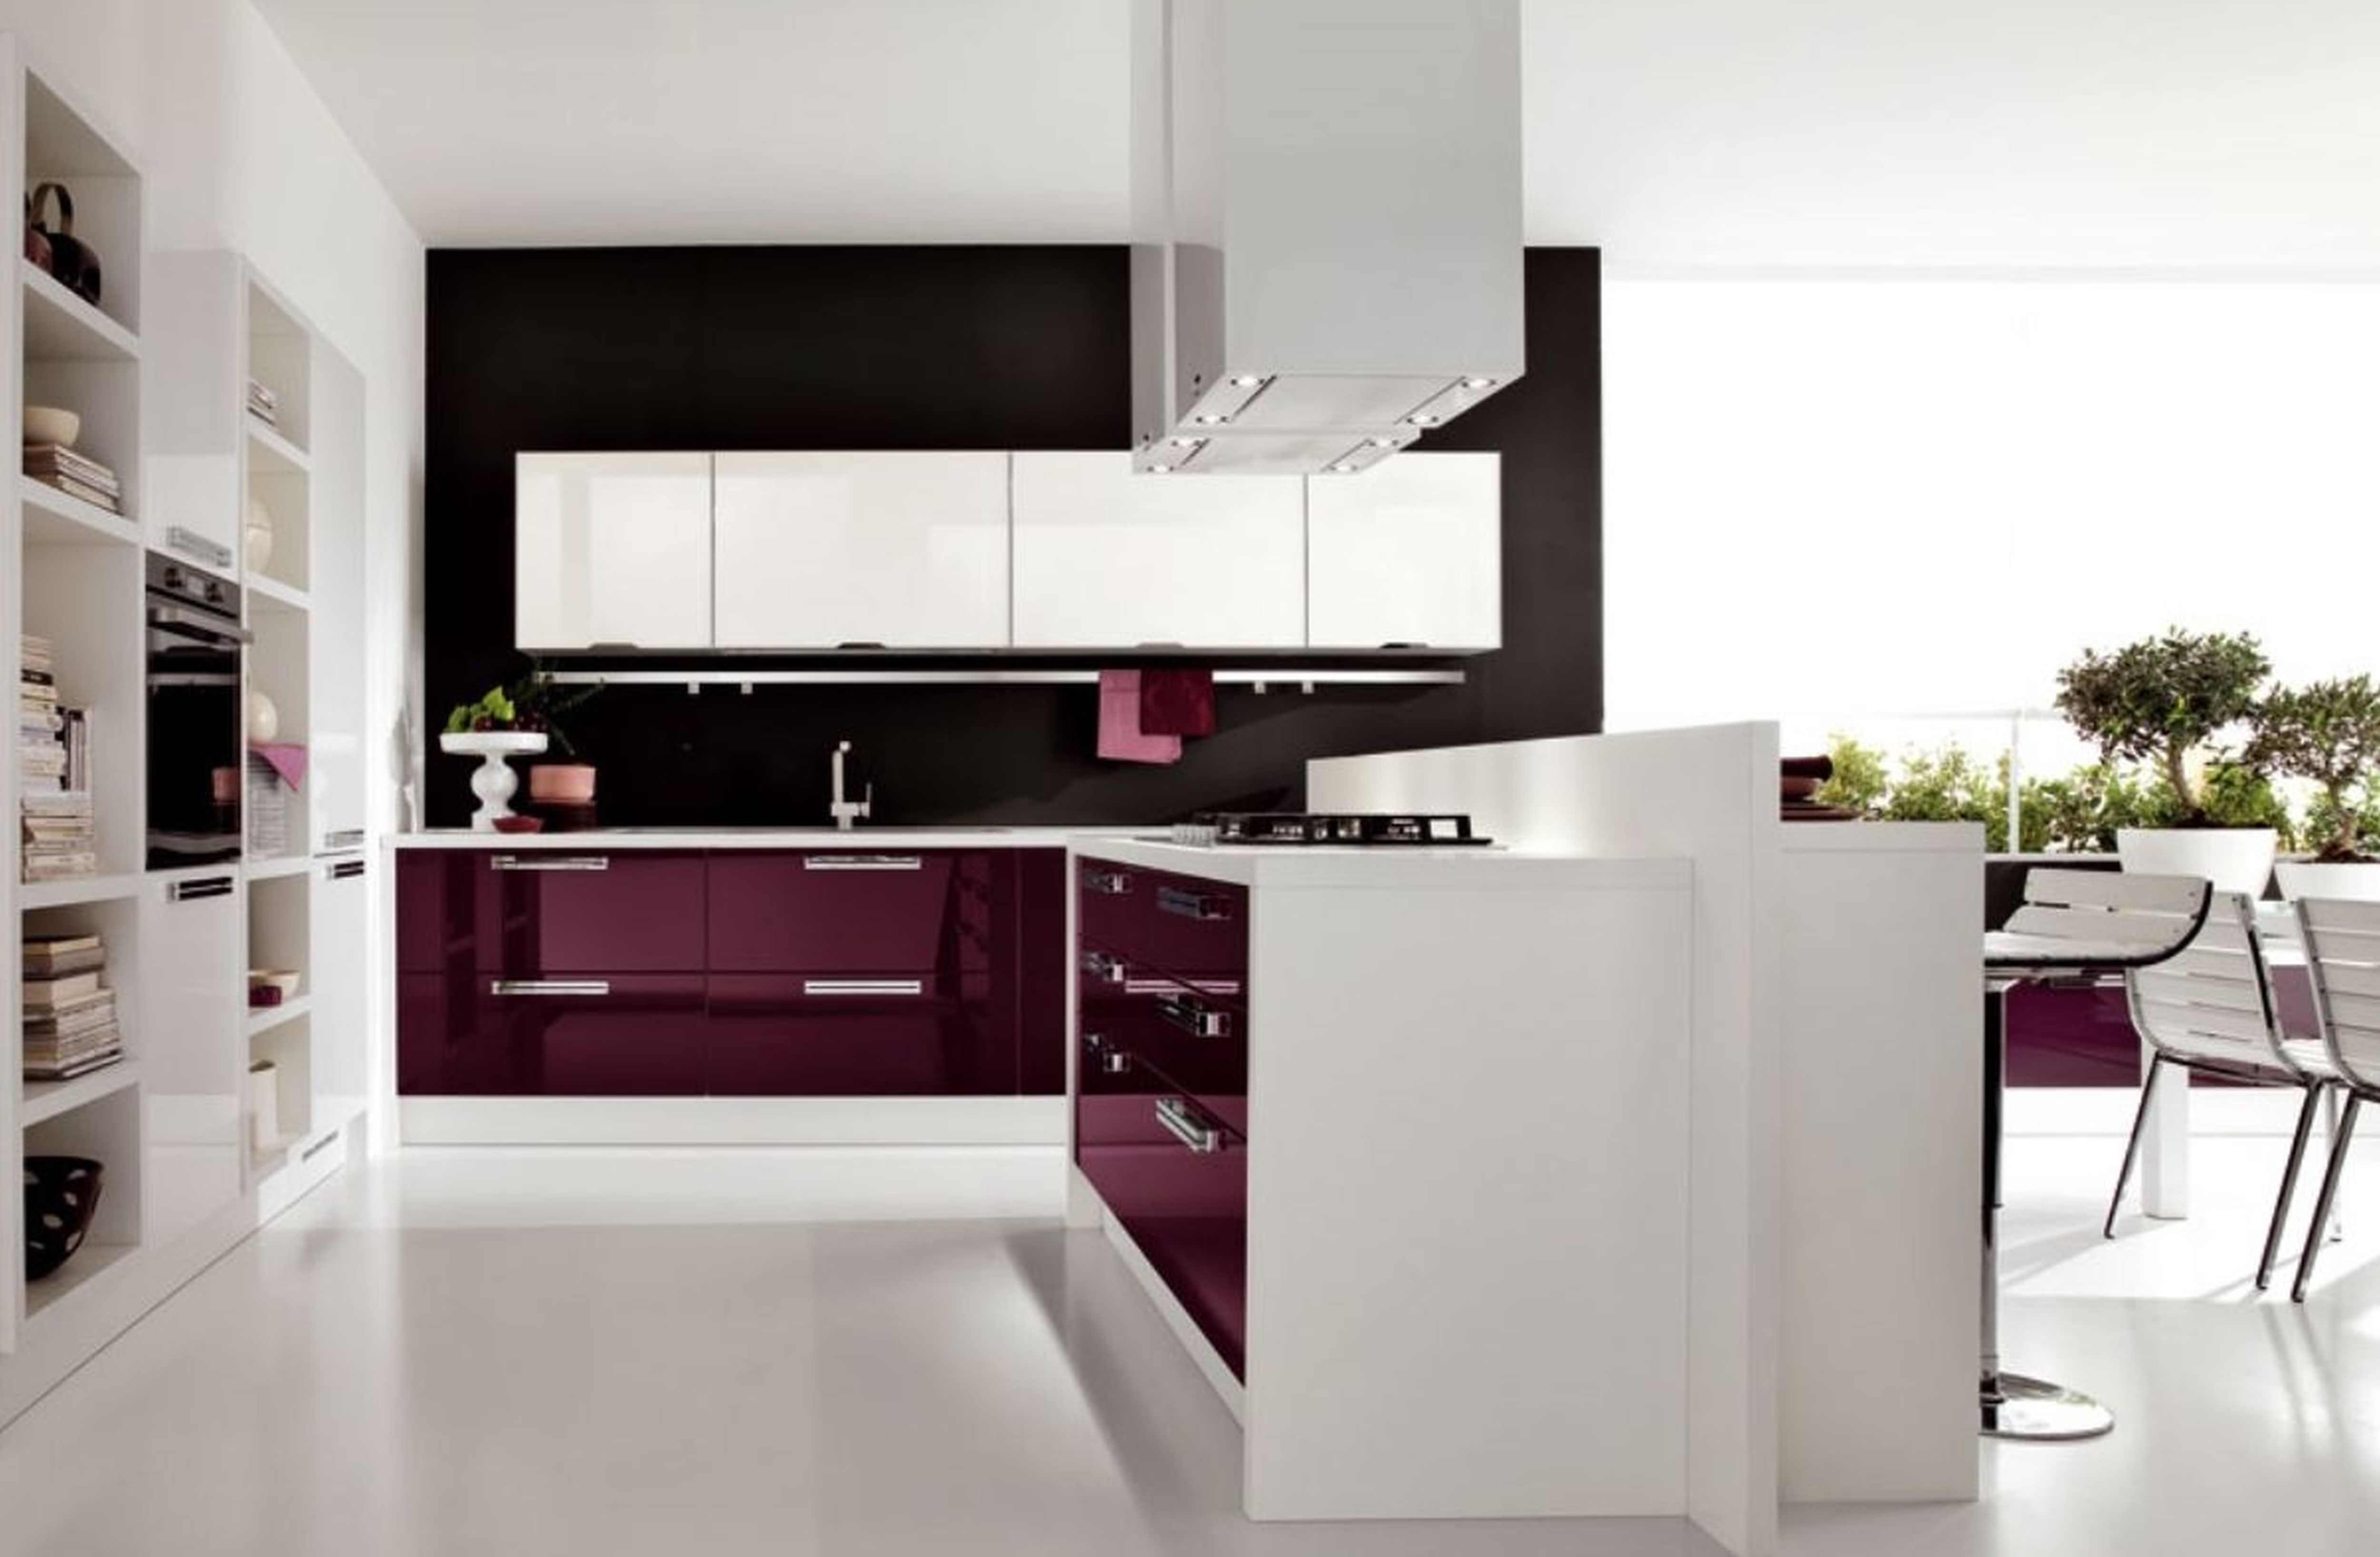 Interior design images good modern kitchen design gallery for Modern kitchen gallery